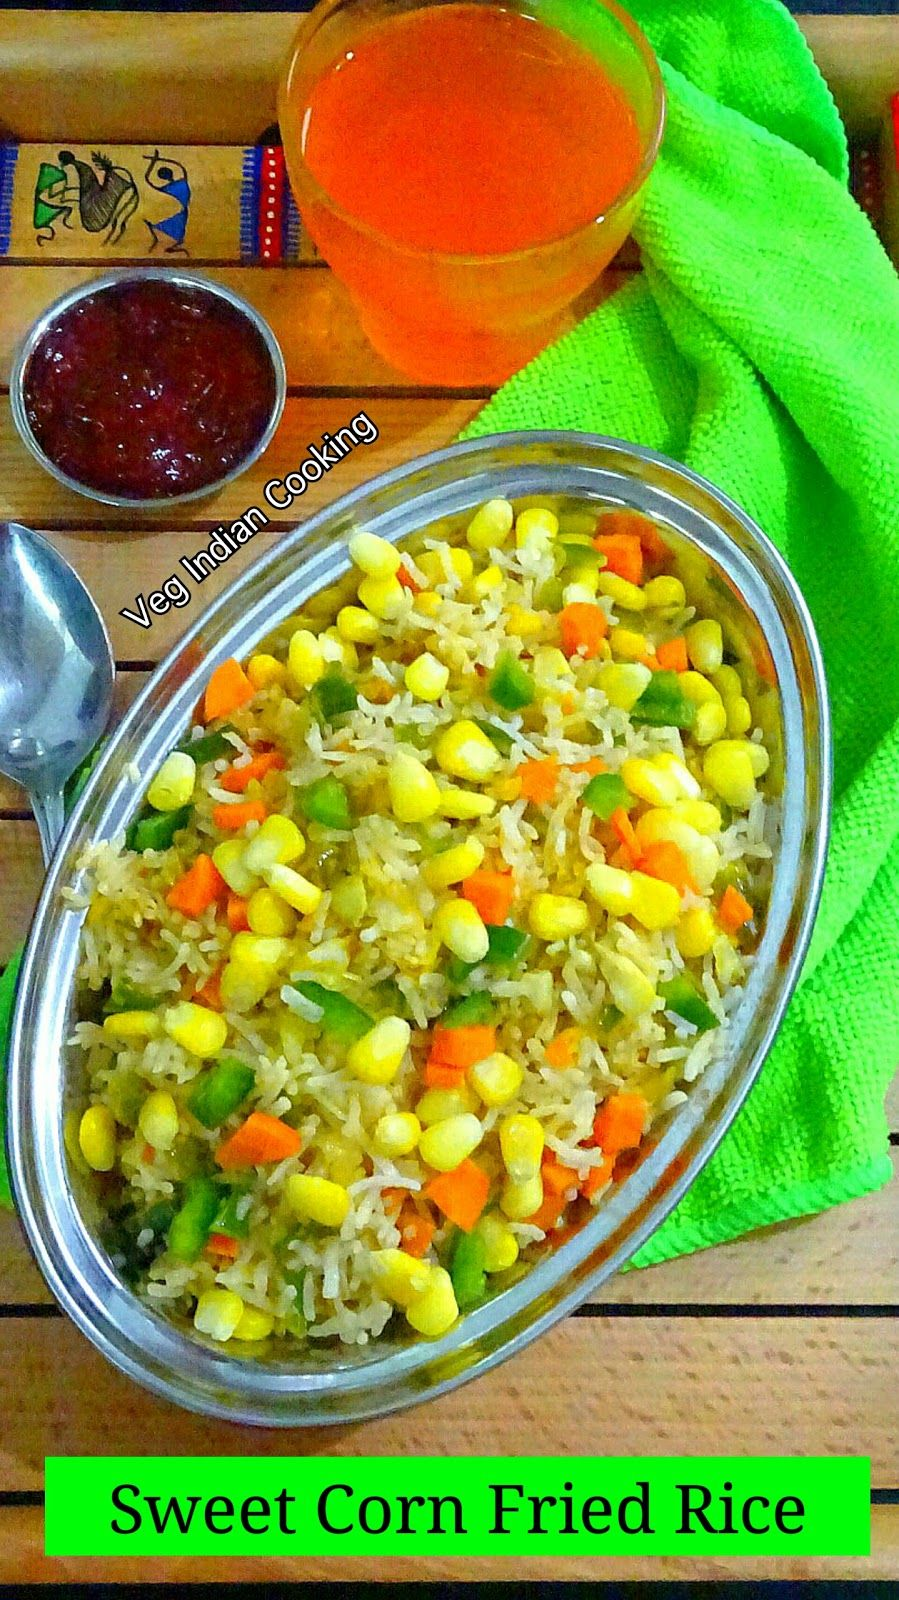 Sweet corn fried rice sweet corn fried rice is an indo chinese how to make sweet corn fried rice ccuart Gallery